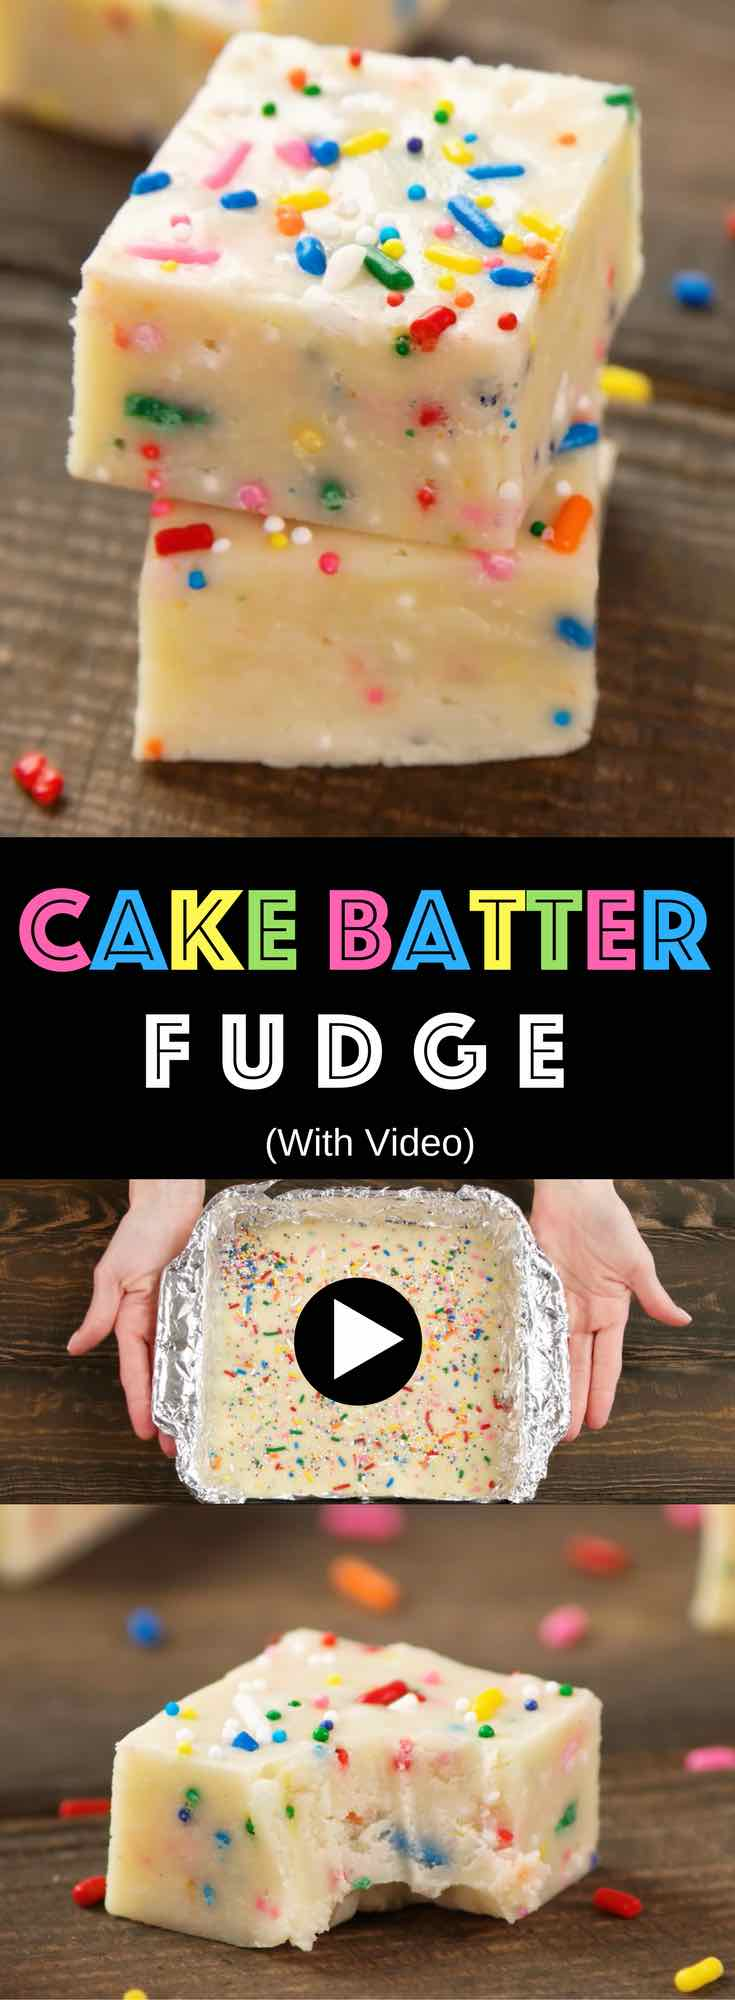 Easy Cake Batter Fudge - Creamy and chocolaty, sweet and soft, with colorful sprinkles. All you need is a few simple ingredients: Cake mix, butter, white chocolate chips, condensed milk, vanilla extract and sprinkles! So Good! Home made gift recipes. Easy recipes for birthday or Mother's Day. Vegetarian. Video recipe. | tipbuzz.com